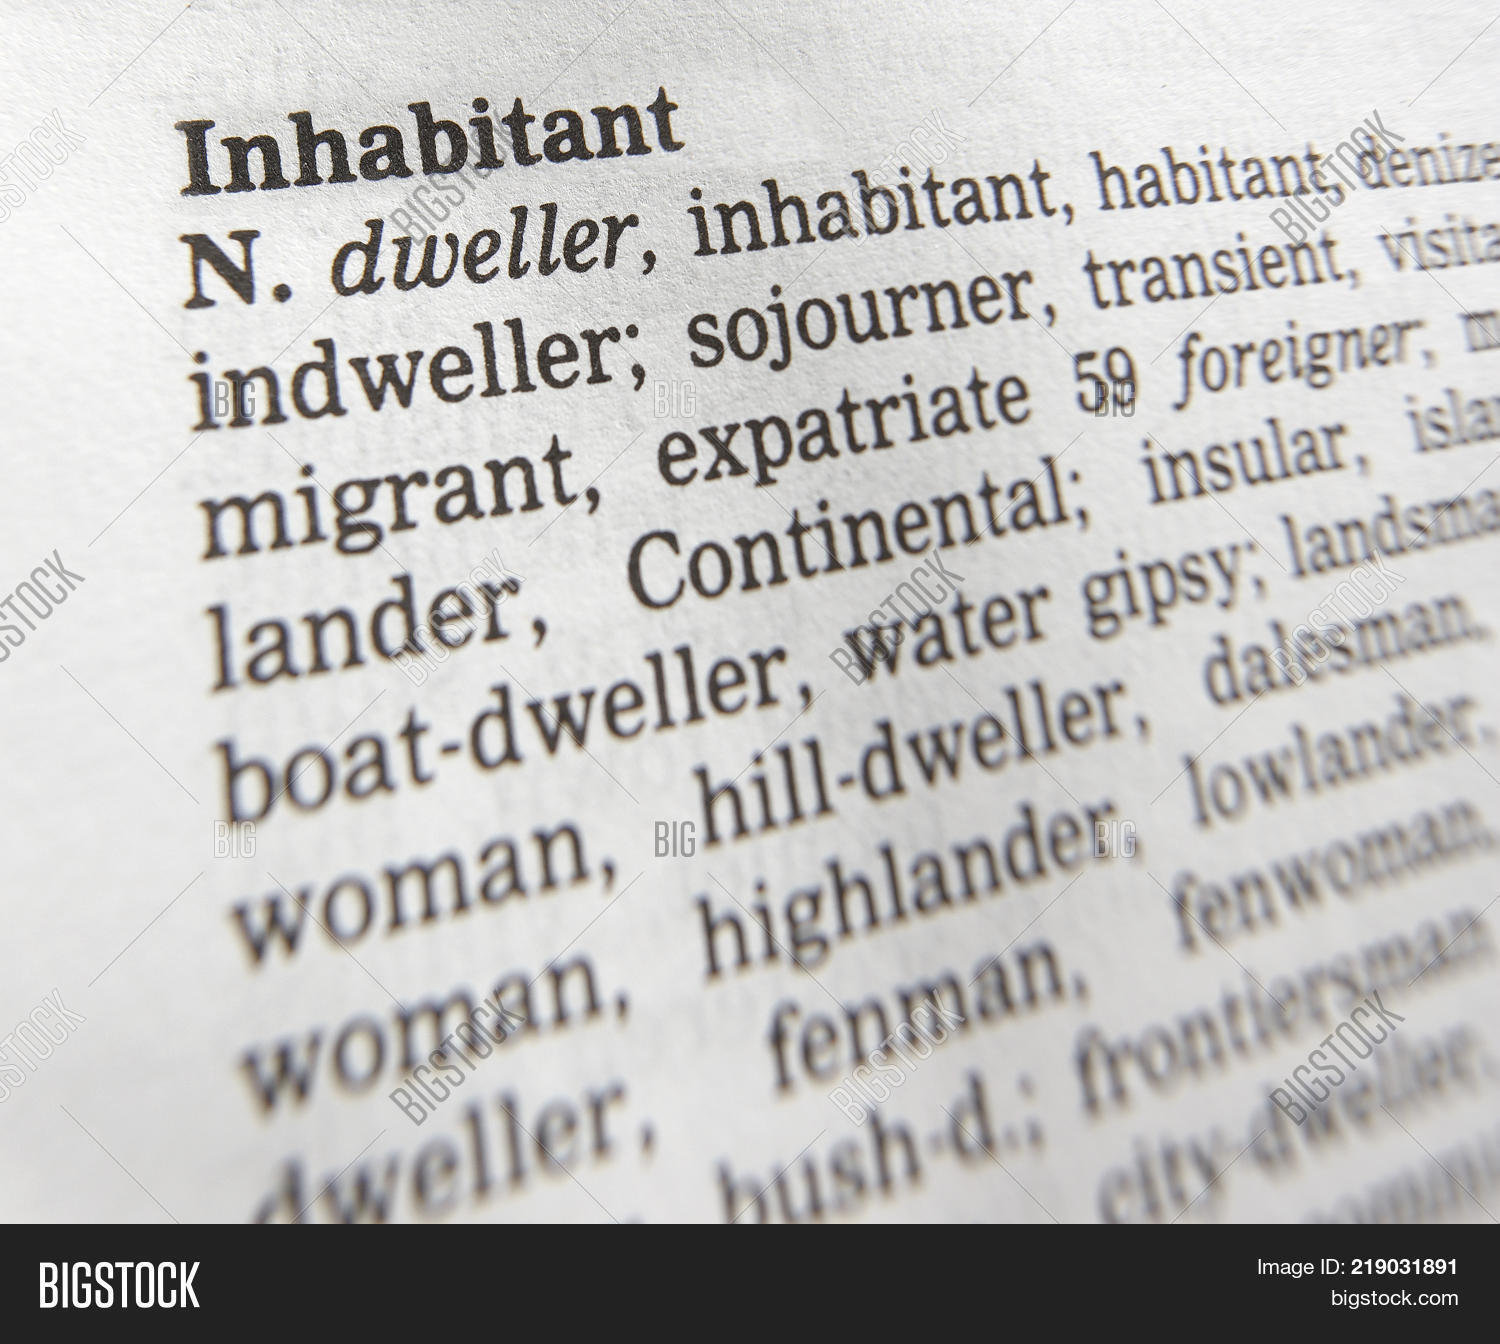 CLECKHEATON, WEST YORKSHIRE, UK: THESAURUS PAGE SHOWING DEFINITION OF WORD  INHABITANT, 30TH